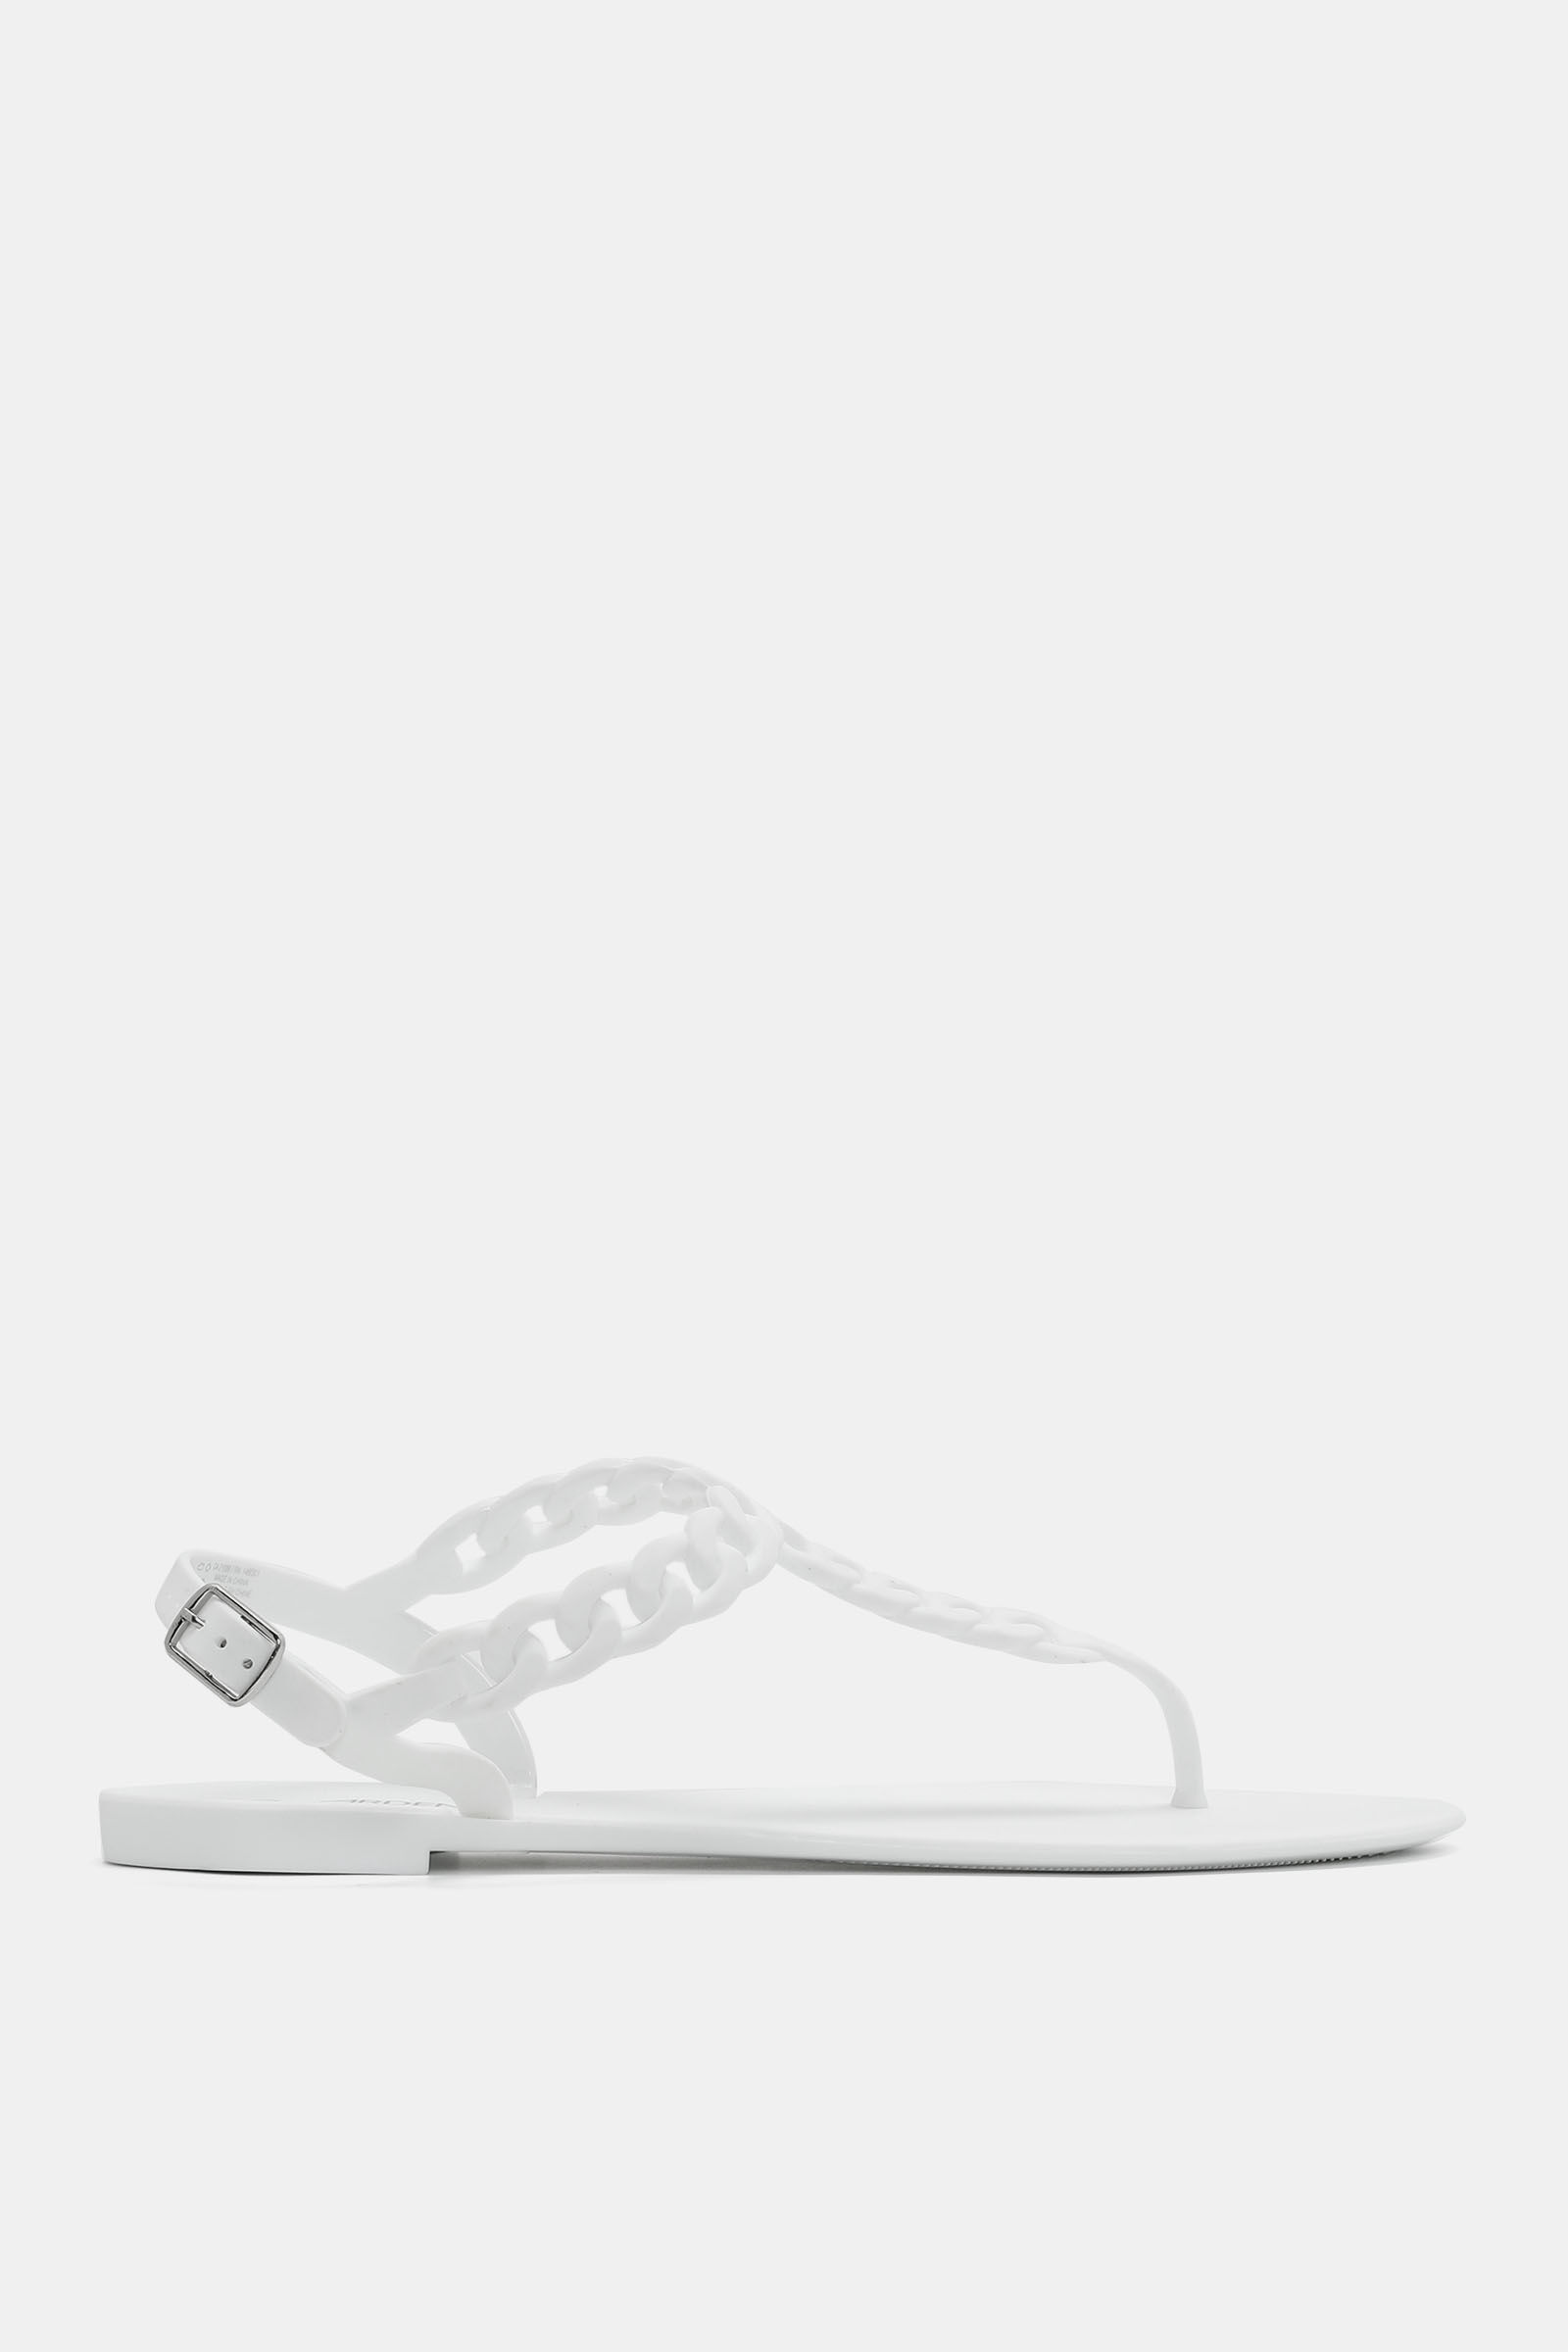 Braided Rubber T-Strap Sandals - Shoes